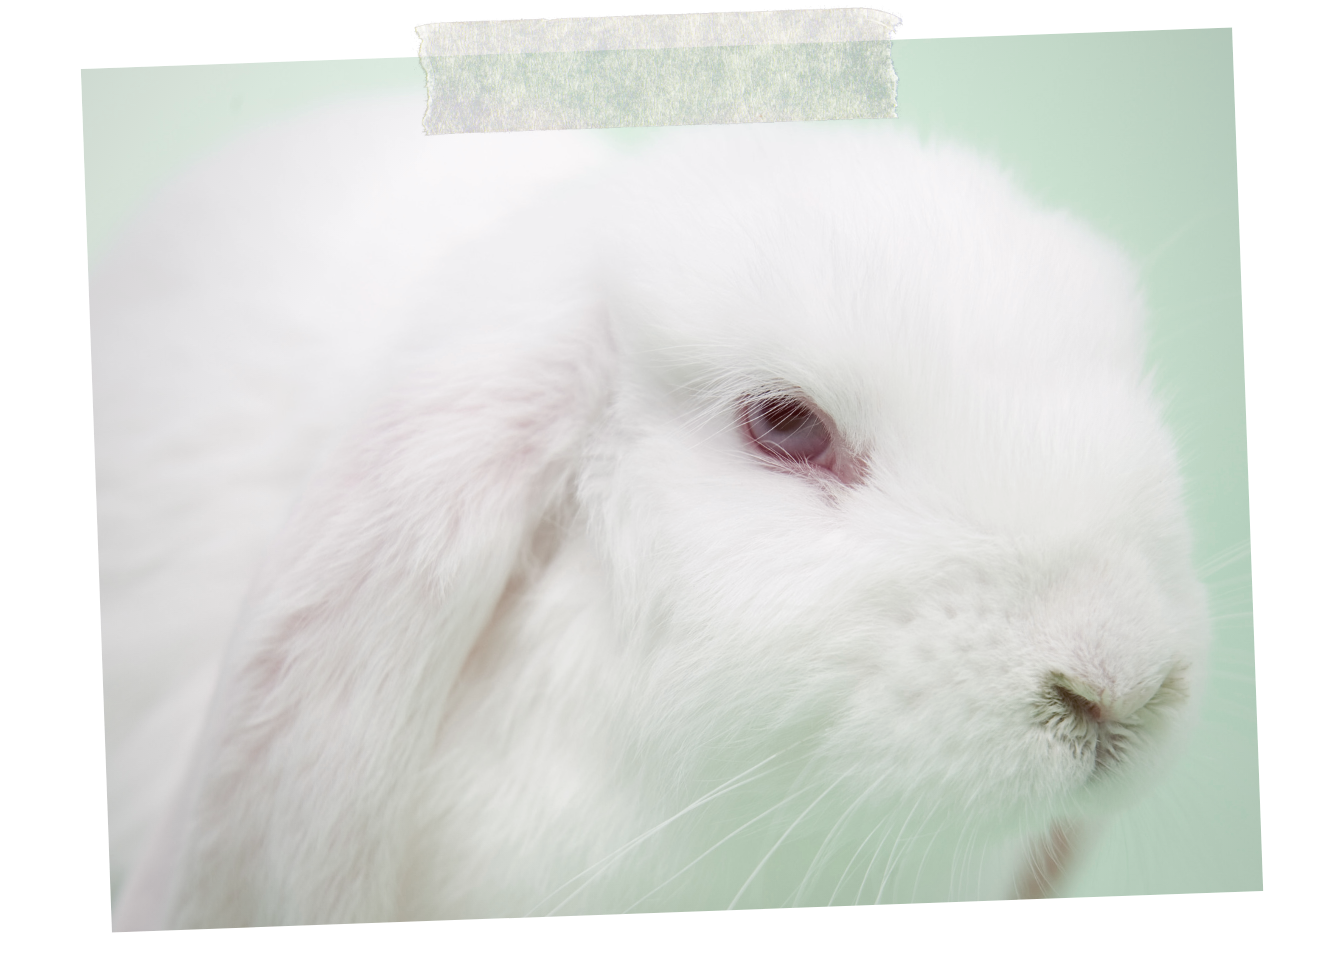 MassachusettS RESIDENTS: Help End Cosmetics Testing on Animals - Every year, tens of thousands of animals suffer and die in product testing in the United States. Urge Massachusetts legislators to support these refiled bills that would require the use of test methods that replace, reduce, or refine animal testing of products and ingredients when they are available and provide information of equivalent or better scientific quality and relevance for the intended purpose.